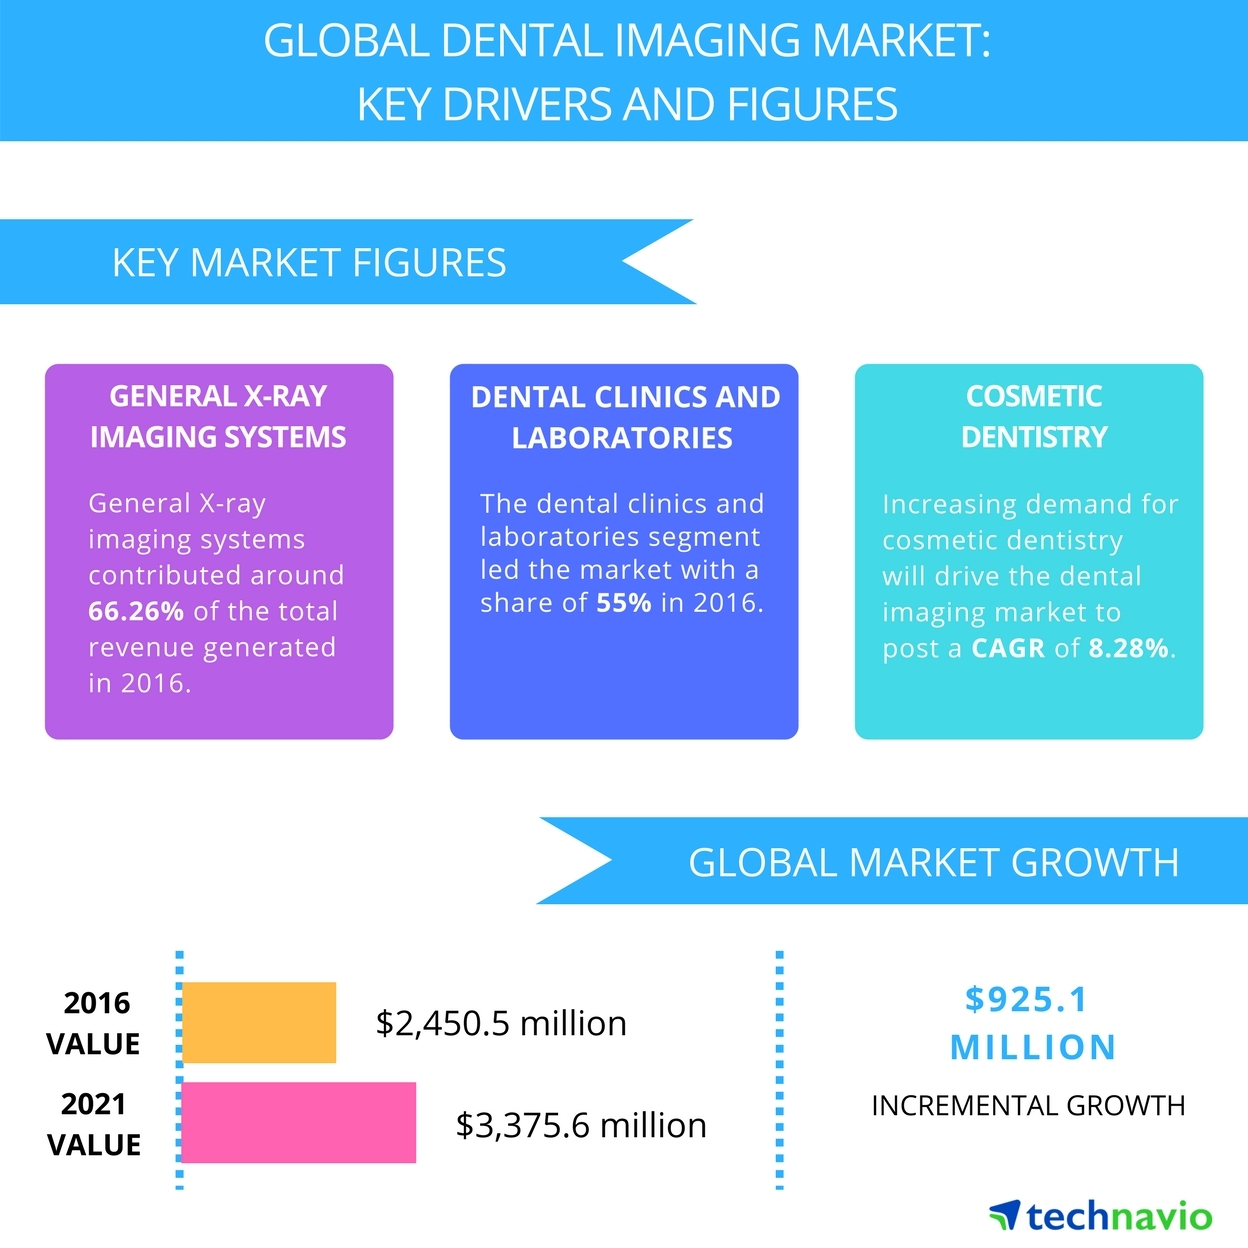 Top 5 Vendors in the Dental Imaging Market from 2017 to 2021